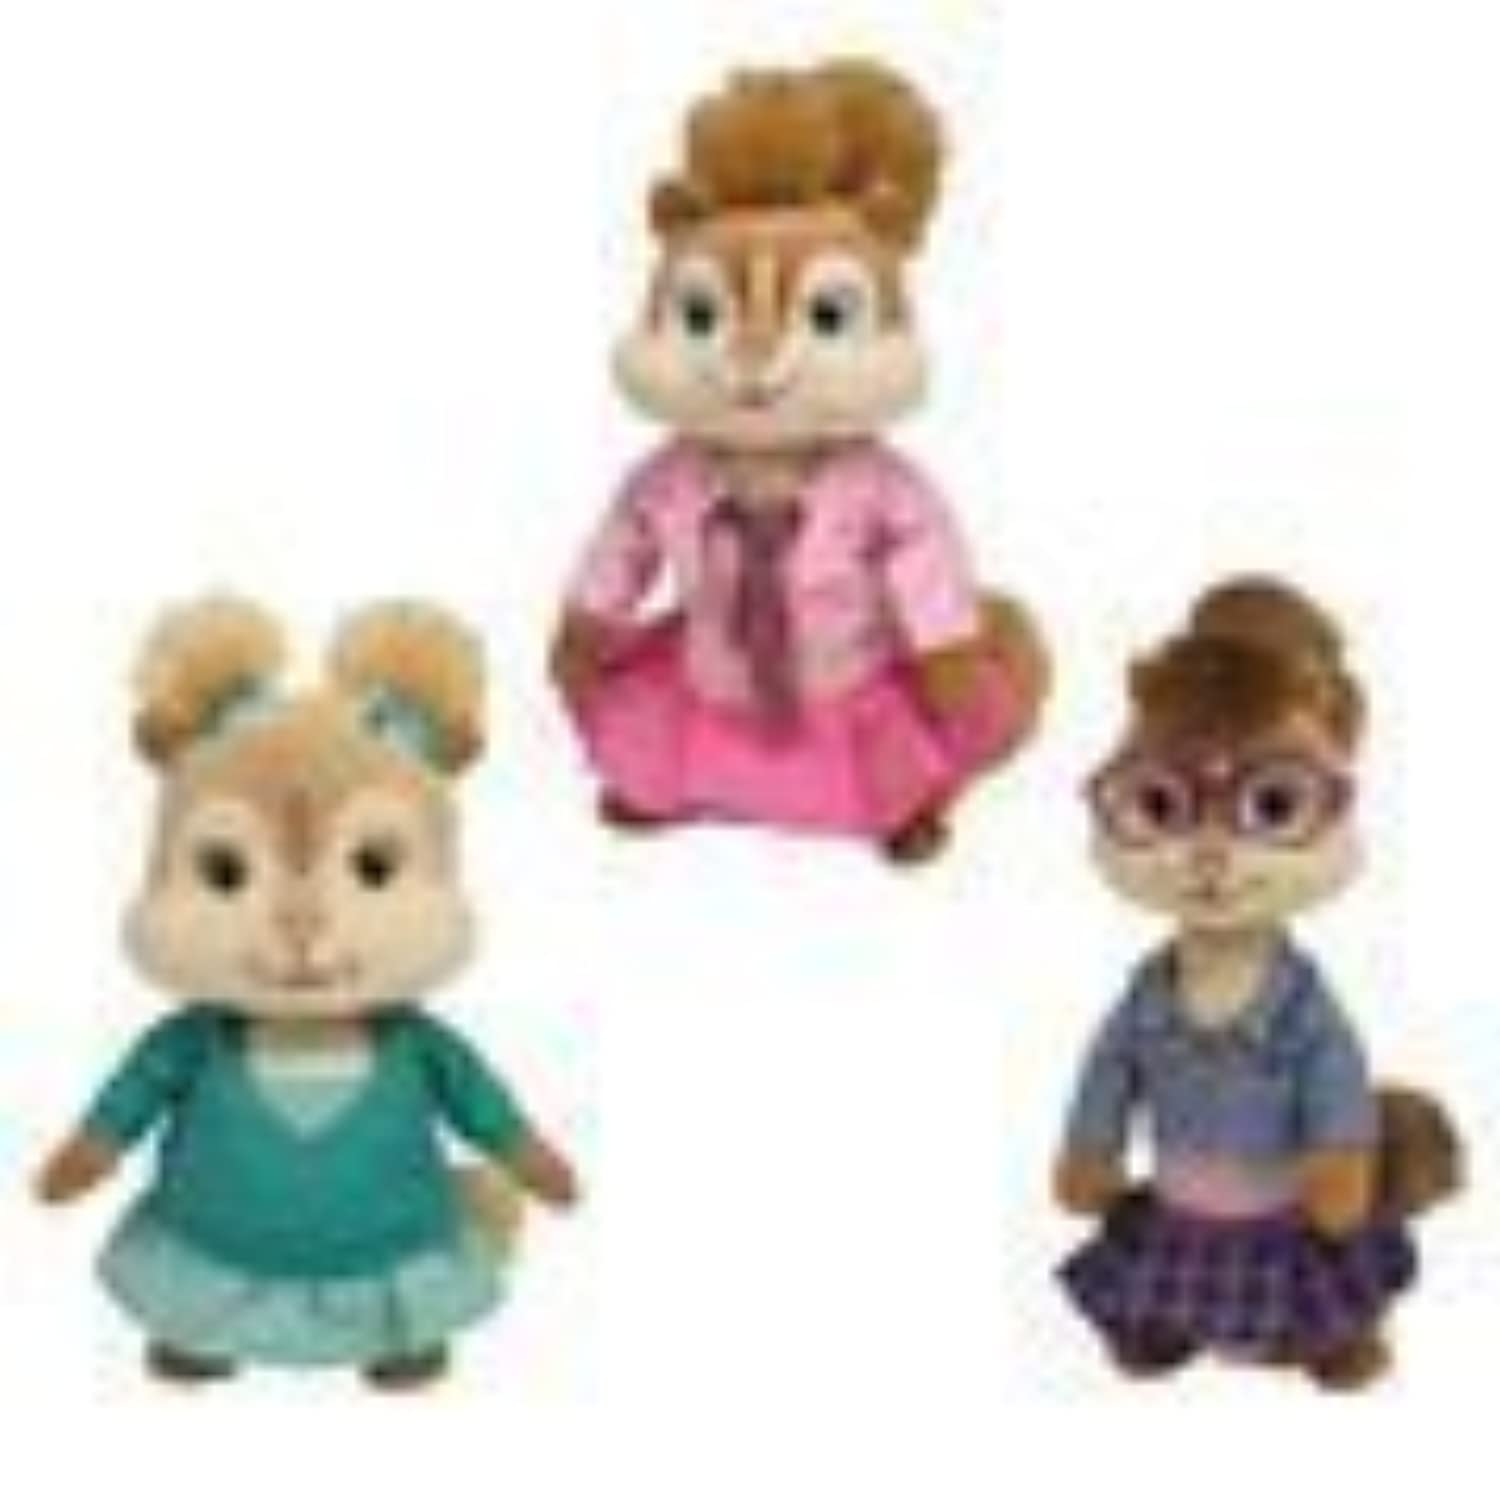 TY Beanie Babies (ビーニーベイビーズ) - Brittany, Eleanor & Jeanette ( Set of 3 Chipettes )by Ty TOY ドール 人形 フィギュア(並行輸入)